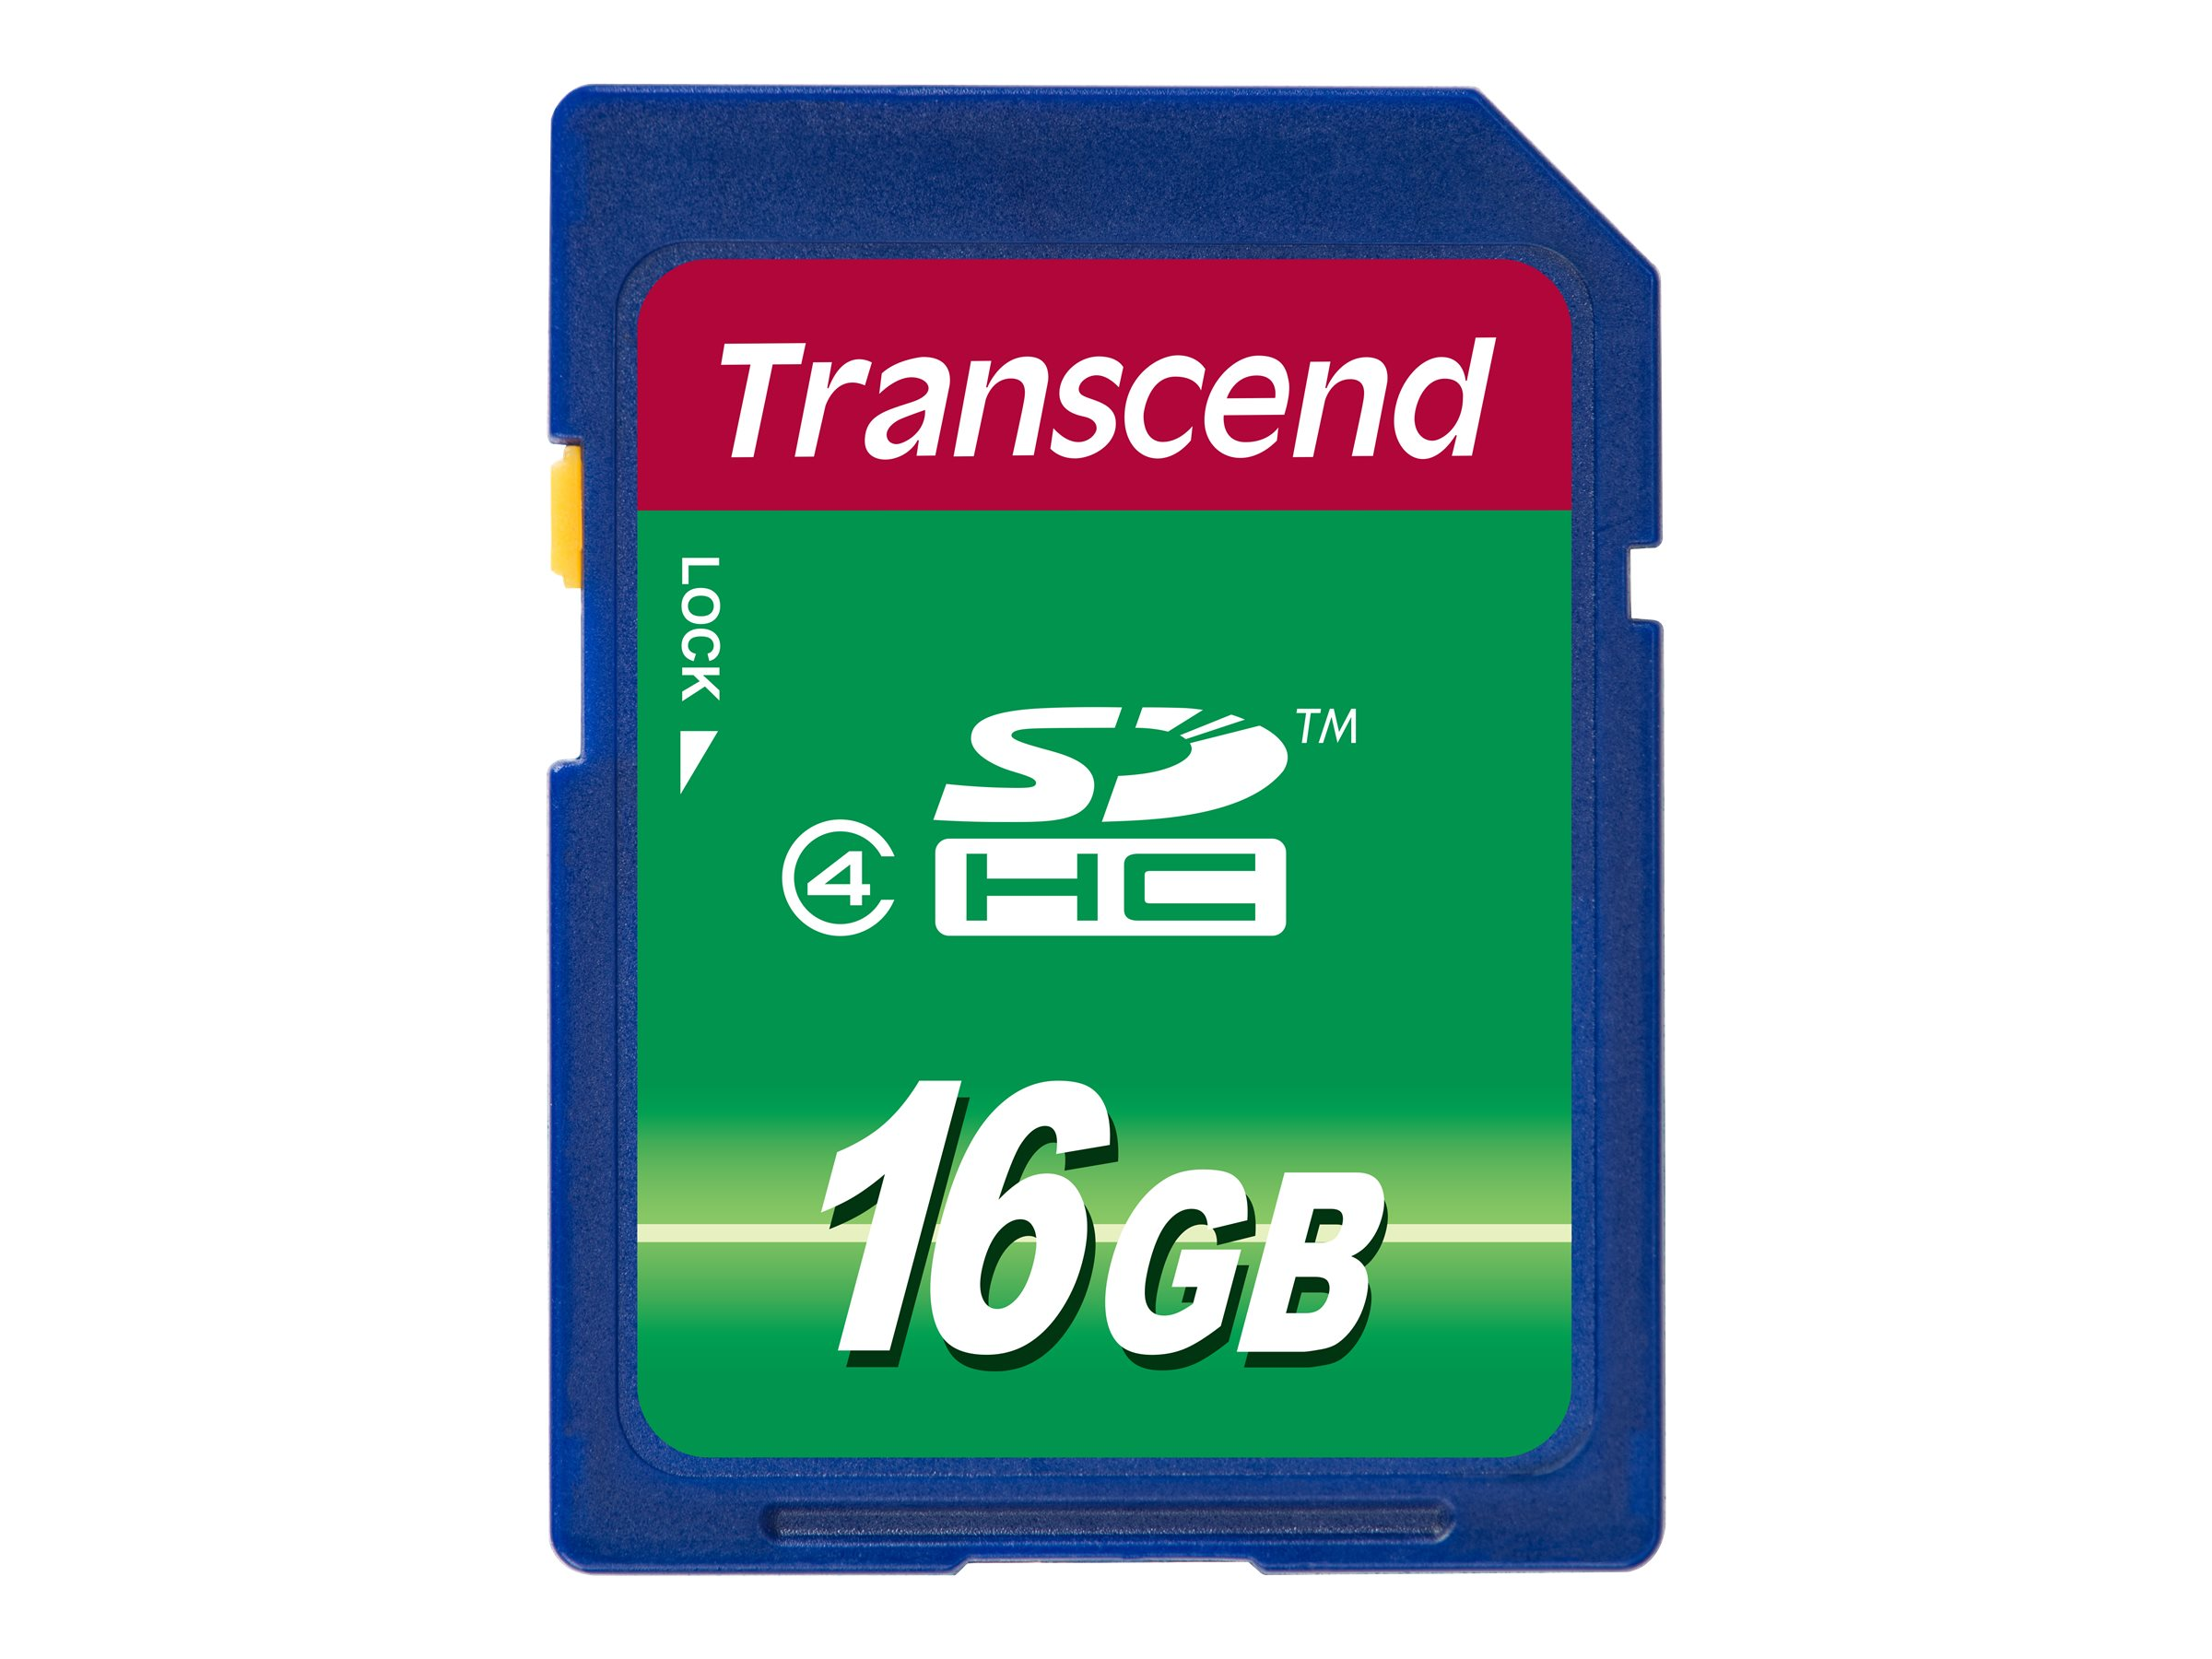 Transcend - Flash-Speicherkarte - 16 GB - Class 4 - SDHC